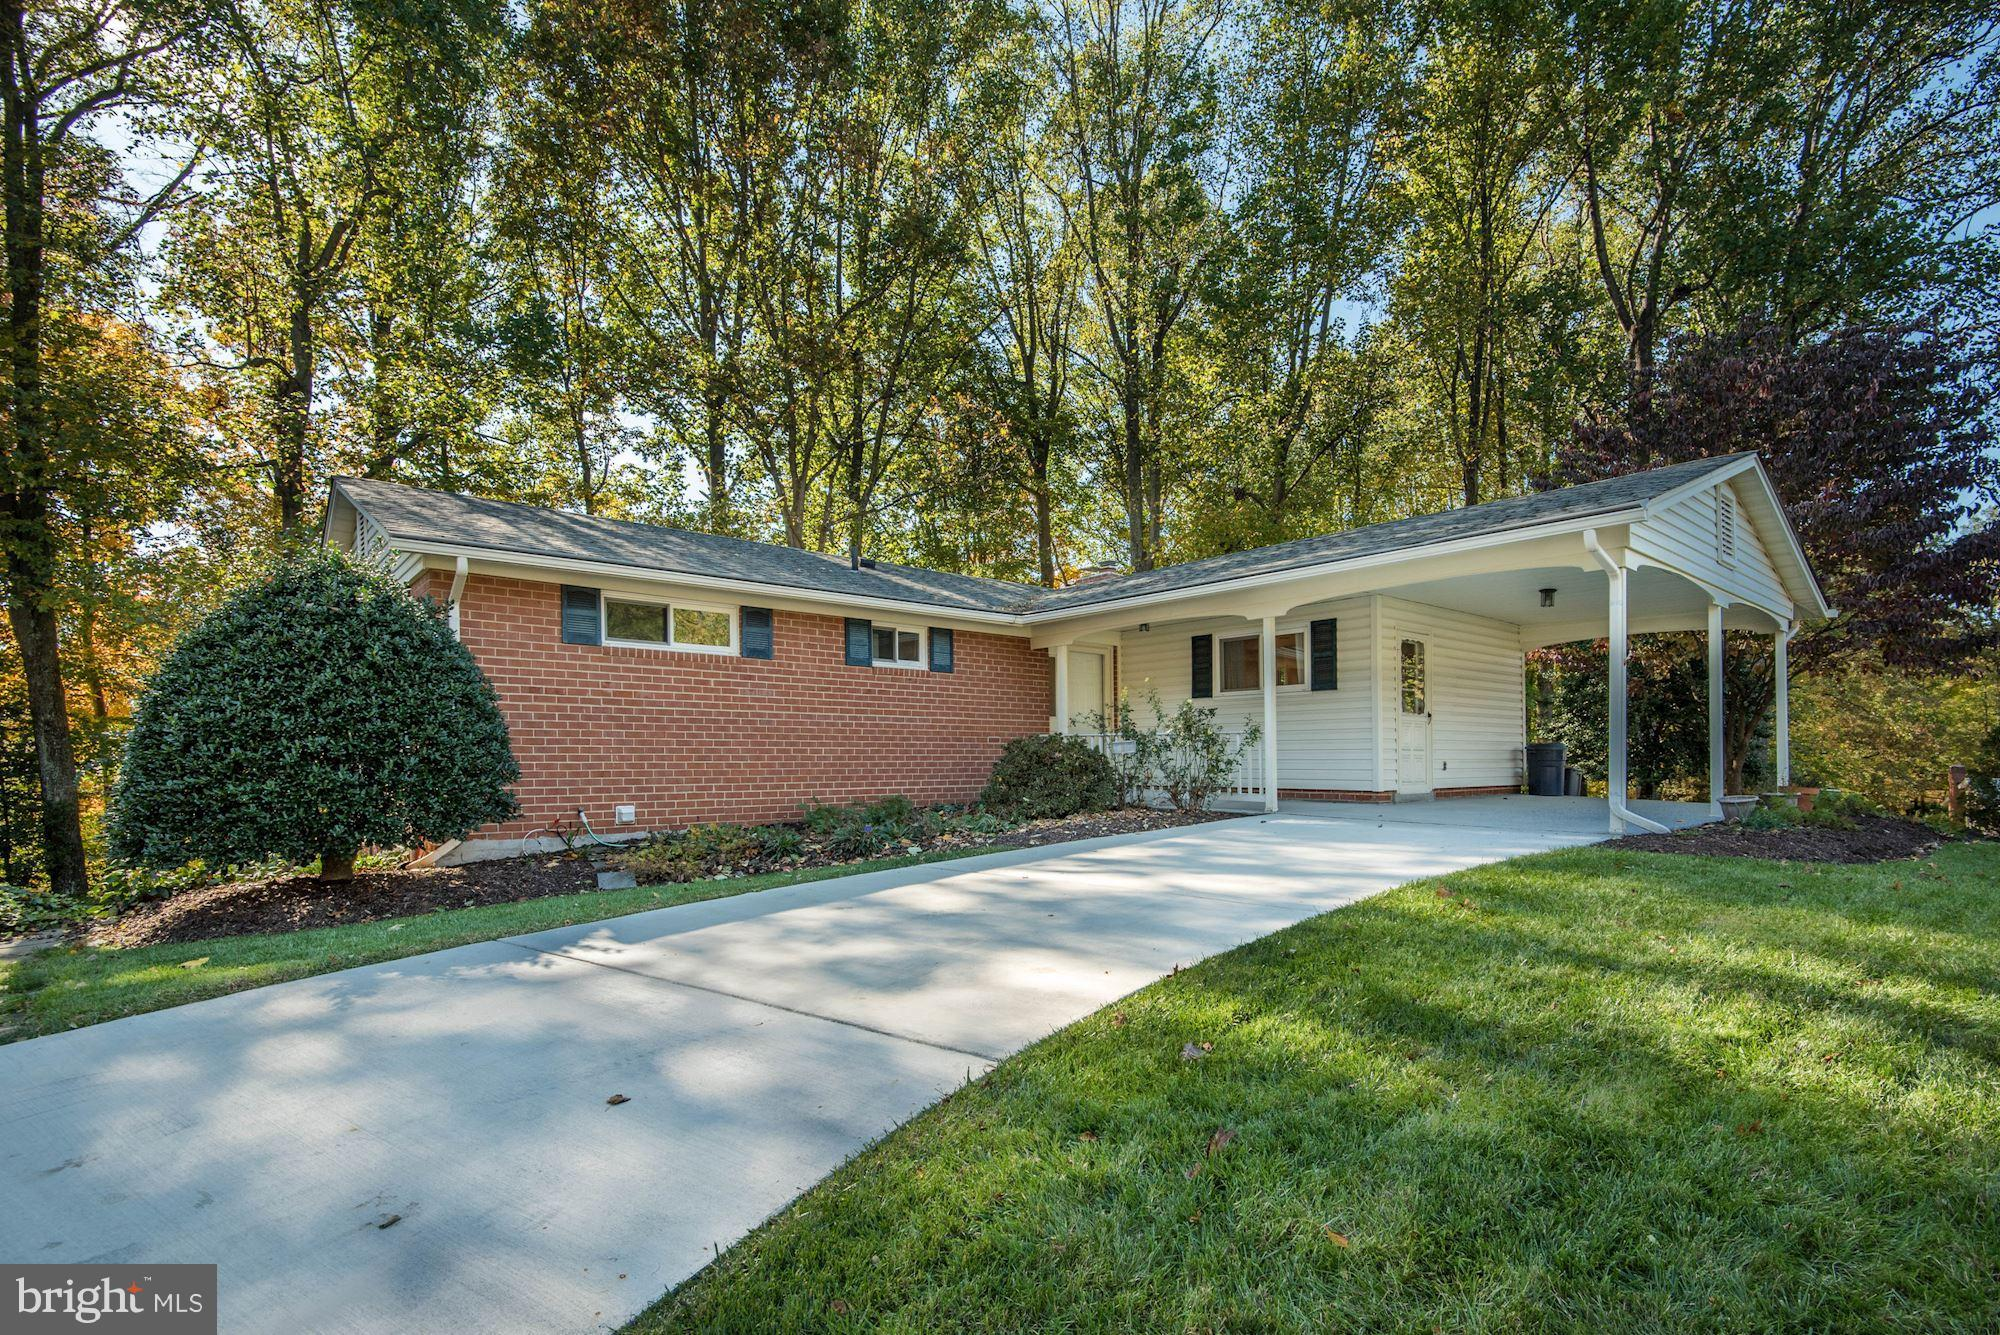 3 BR/3 BA rambler on quiet cul-de-sac in Kings Park West! Formal LR w FP, DR+sunny kitchen w bfast room. Master suite, 2 BRs +hall BA. LL full BA+large fam room w new carpet+gas FP. Steps out to lovely stone patio&private yard. Large Laundry+storage rm. HW floors, updated roof and windows, covered front porch+attached carport! Easy access to Braddock Rd, Laurel Ridge ES + GMU campus! OPEN SUN 2-4!